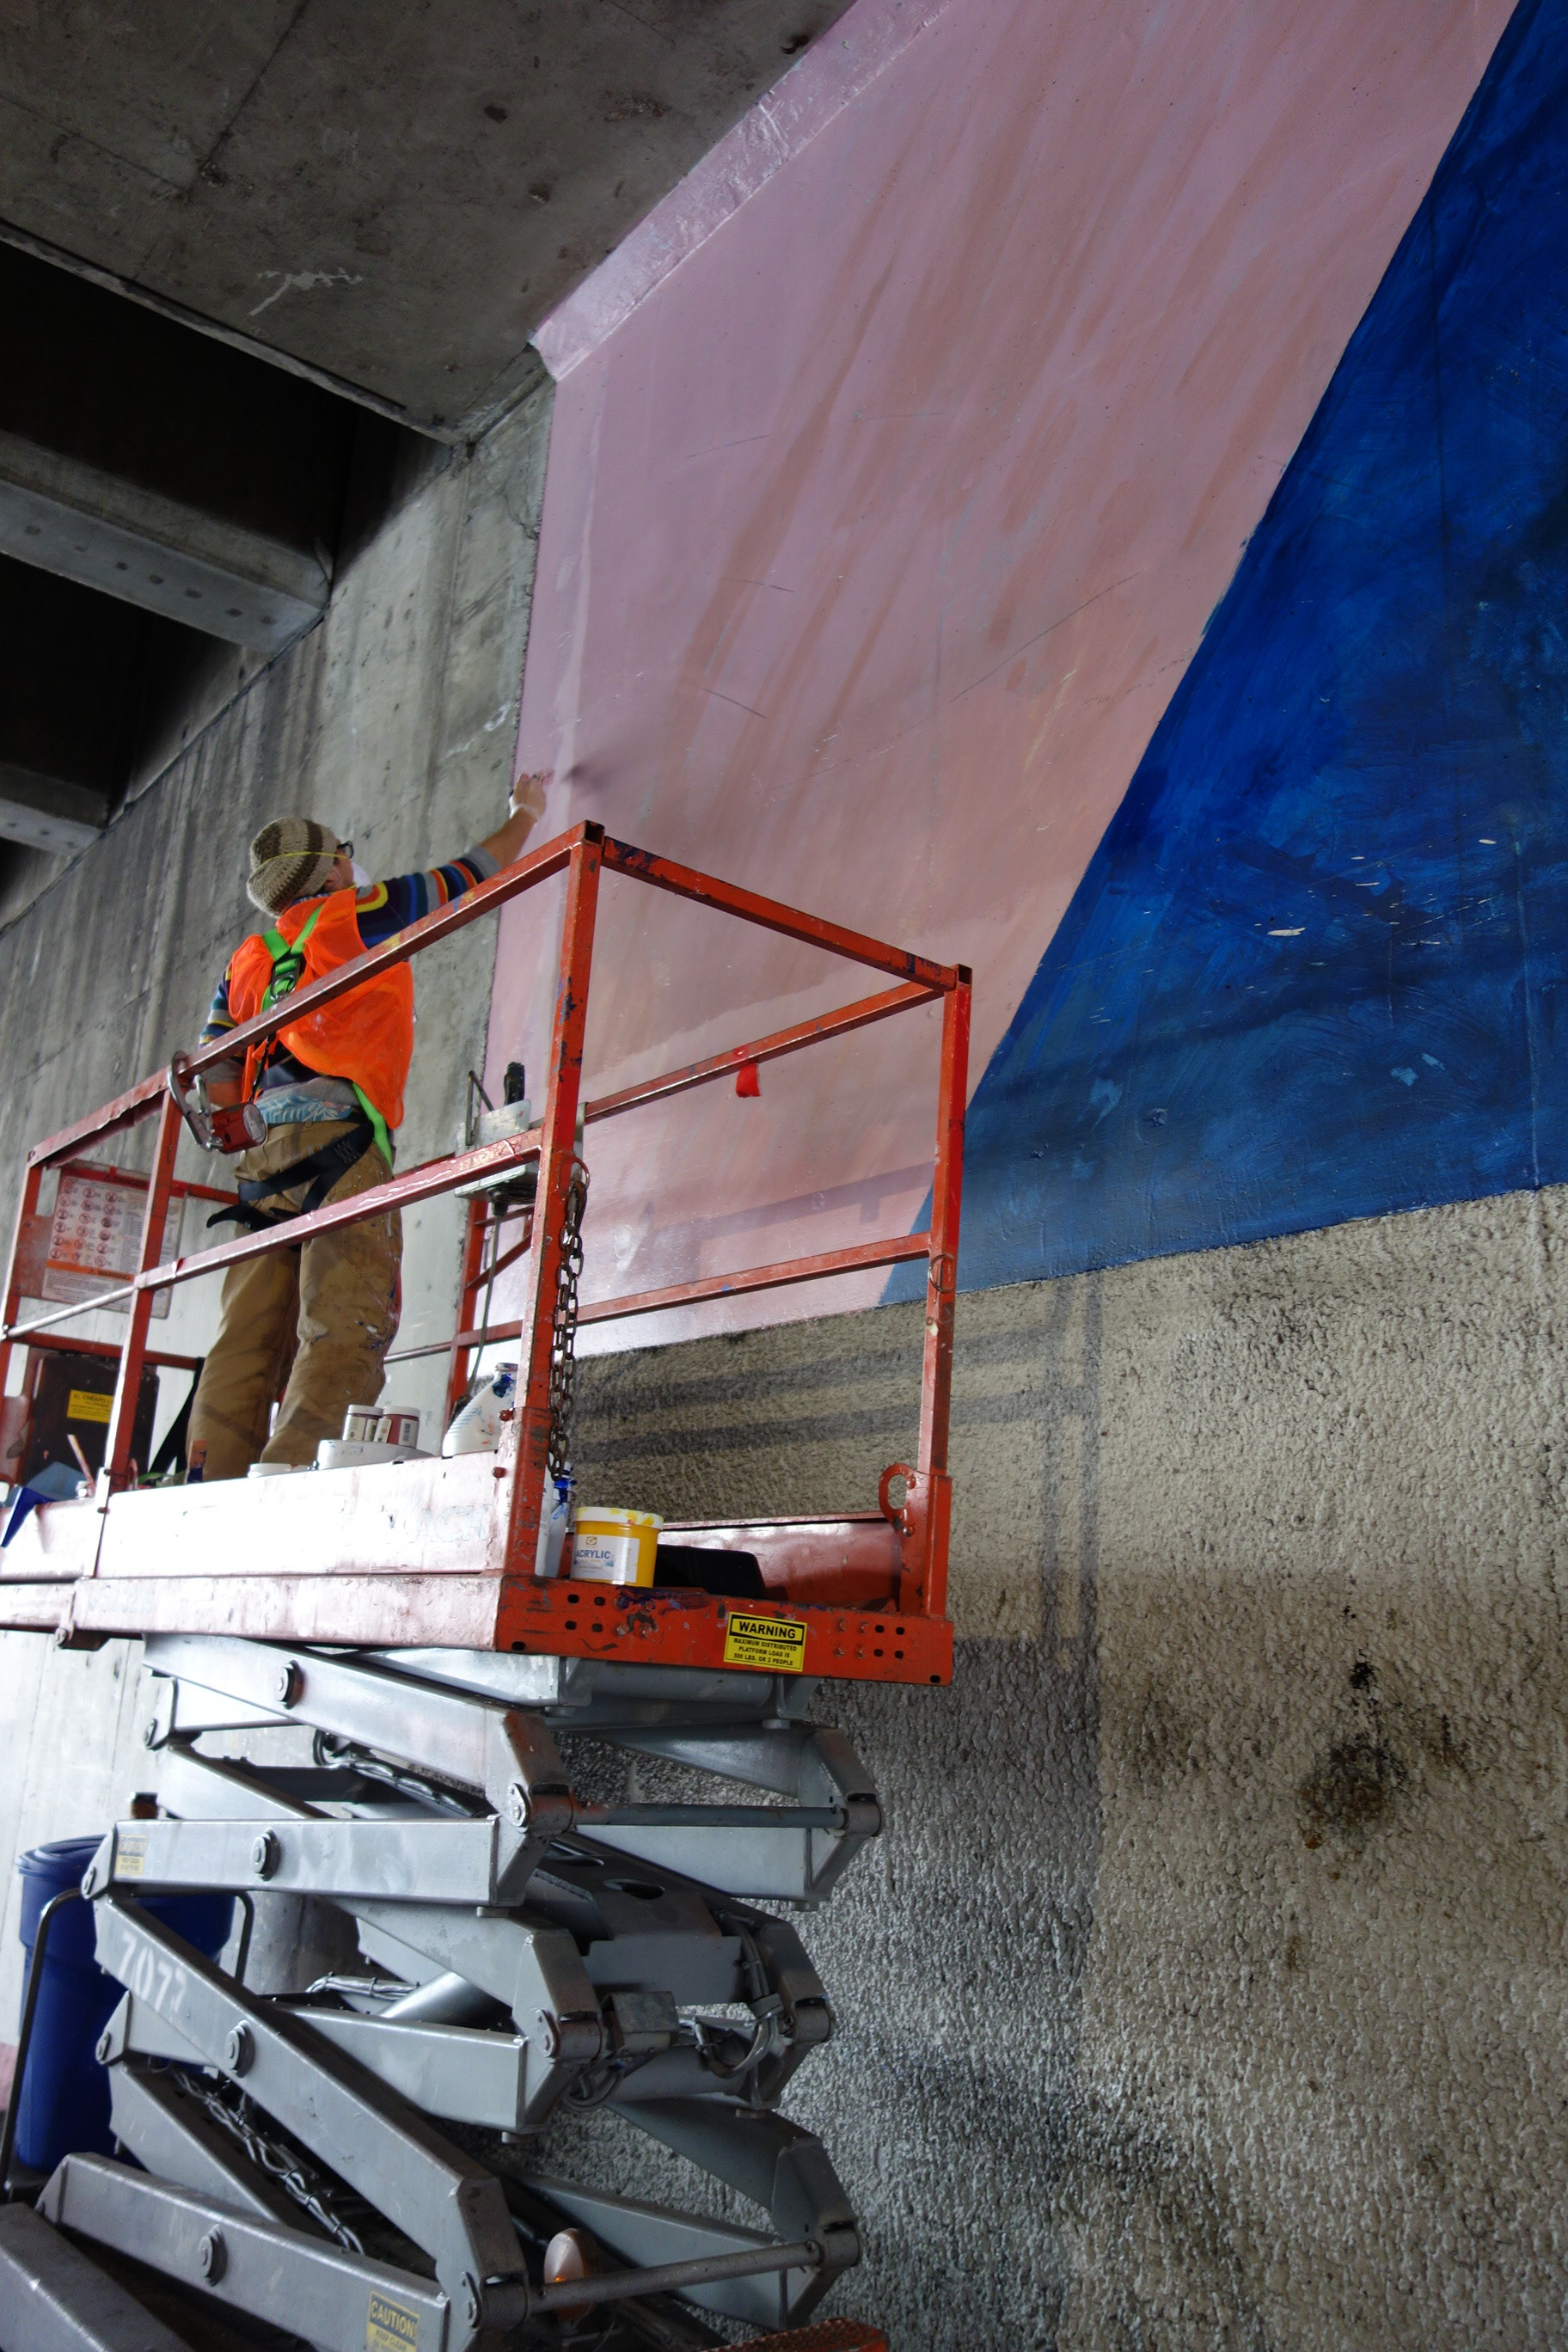 Mural restoration for the city of Los Angeles. Original artwork by Alonzo Davis.